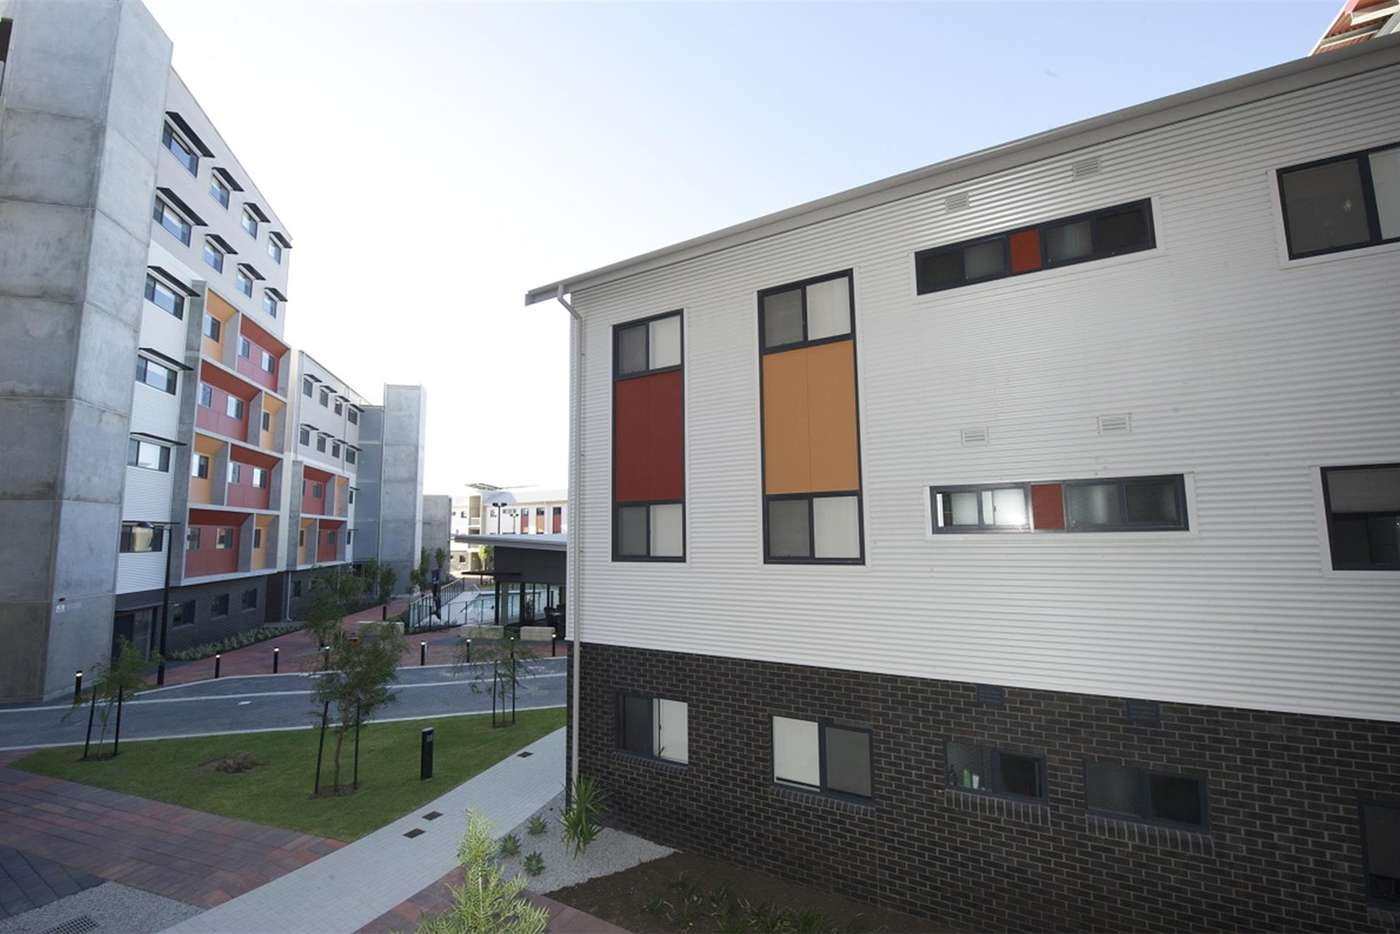 Main view of Homely apartment listing, 0/2 Bradford Street, Mount Lawley WA 6050